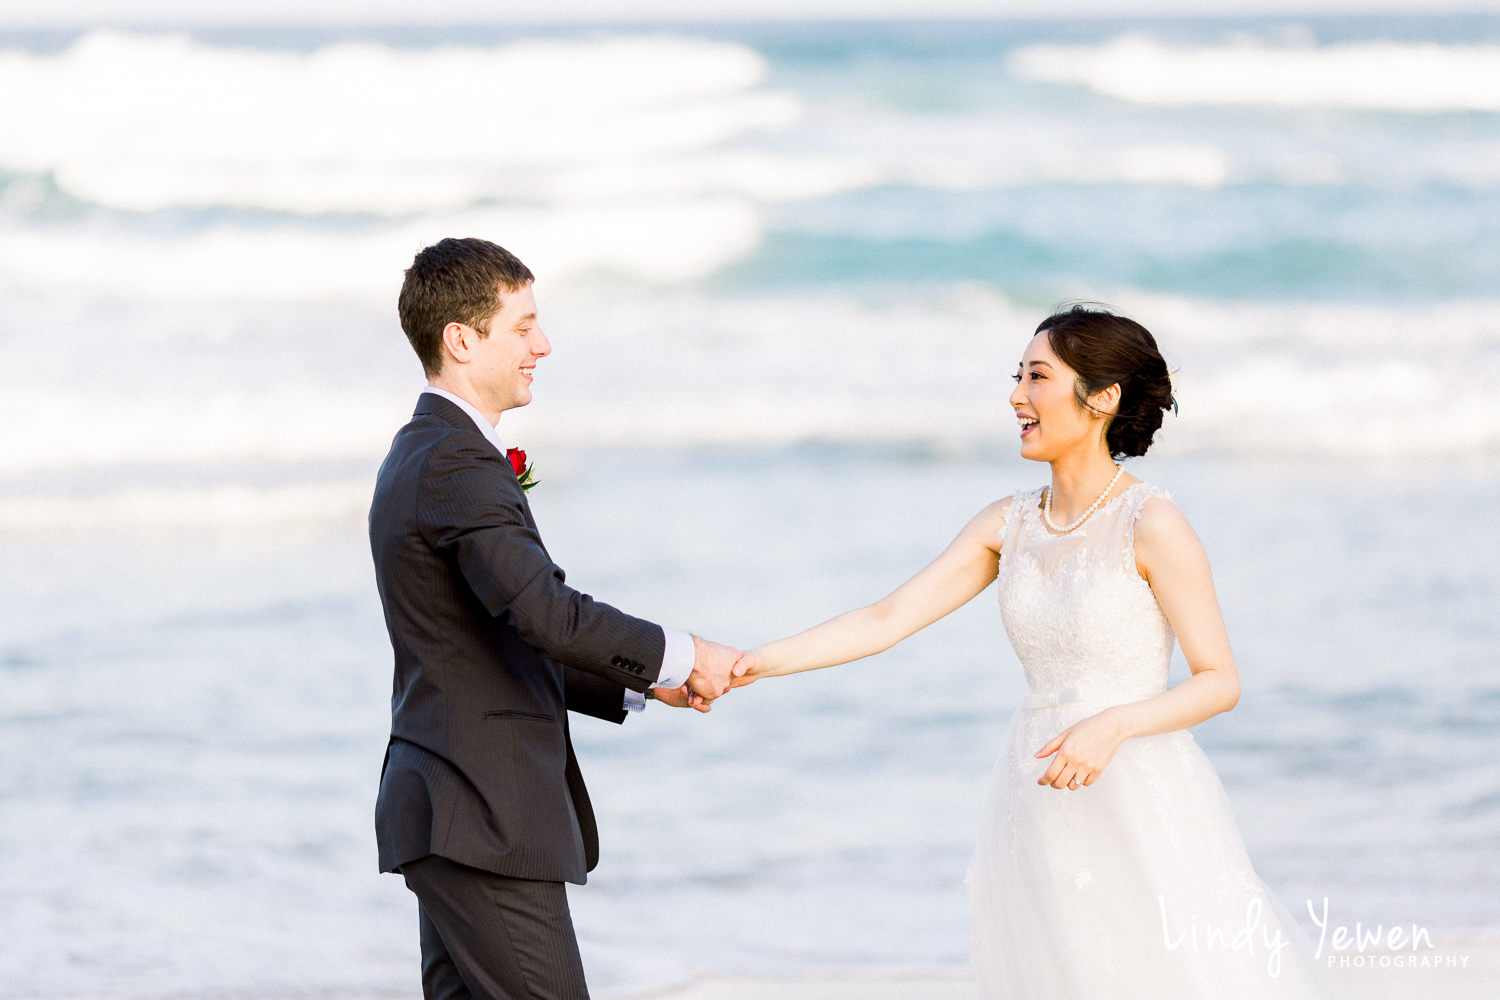 Sunshine-Beach-Weddings-Dimitrije-Maria 157.jpg